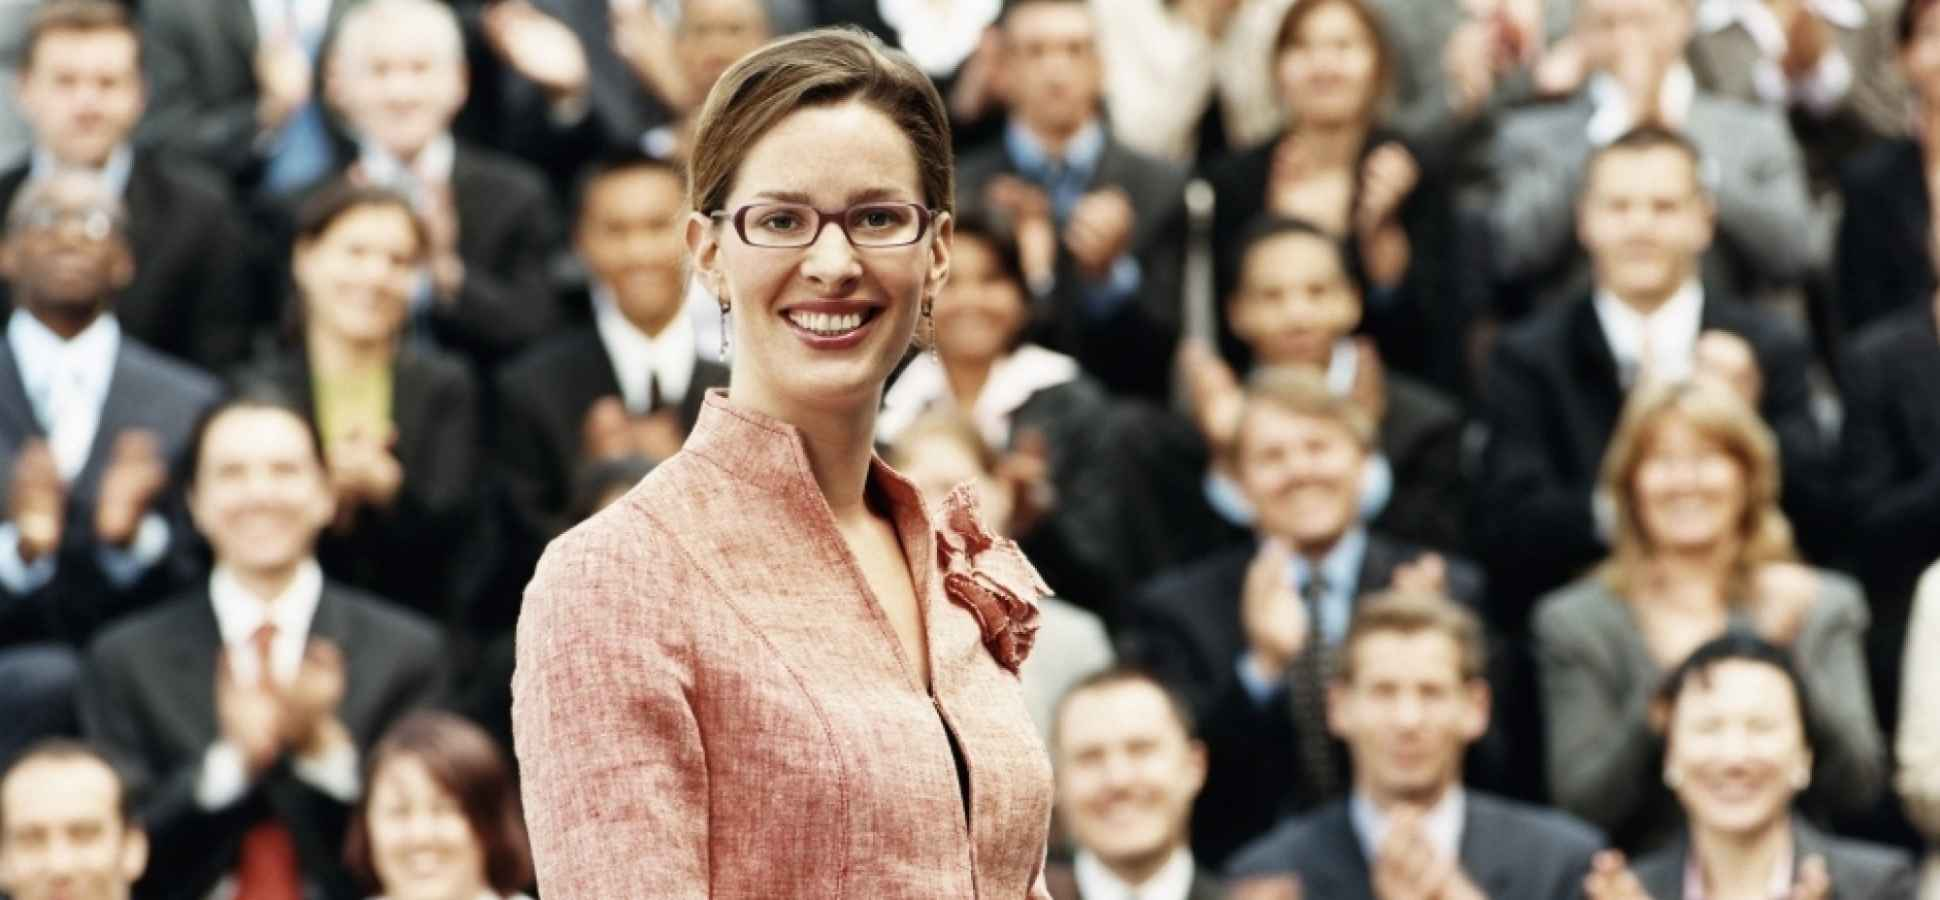 10 Habits of Ultra-Likable Leaders